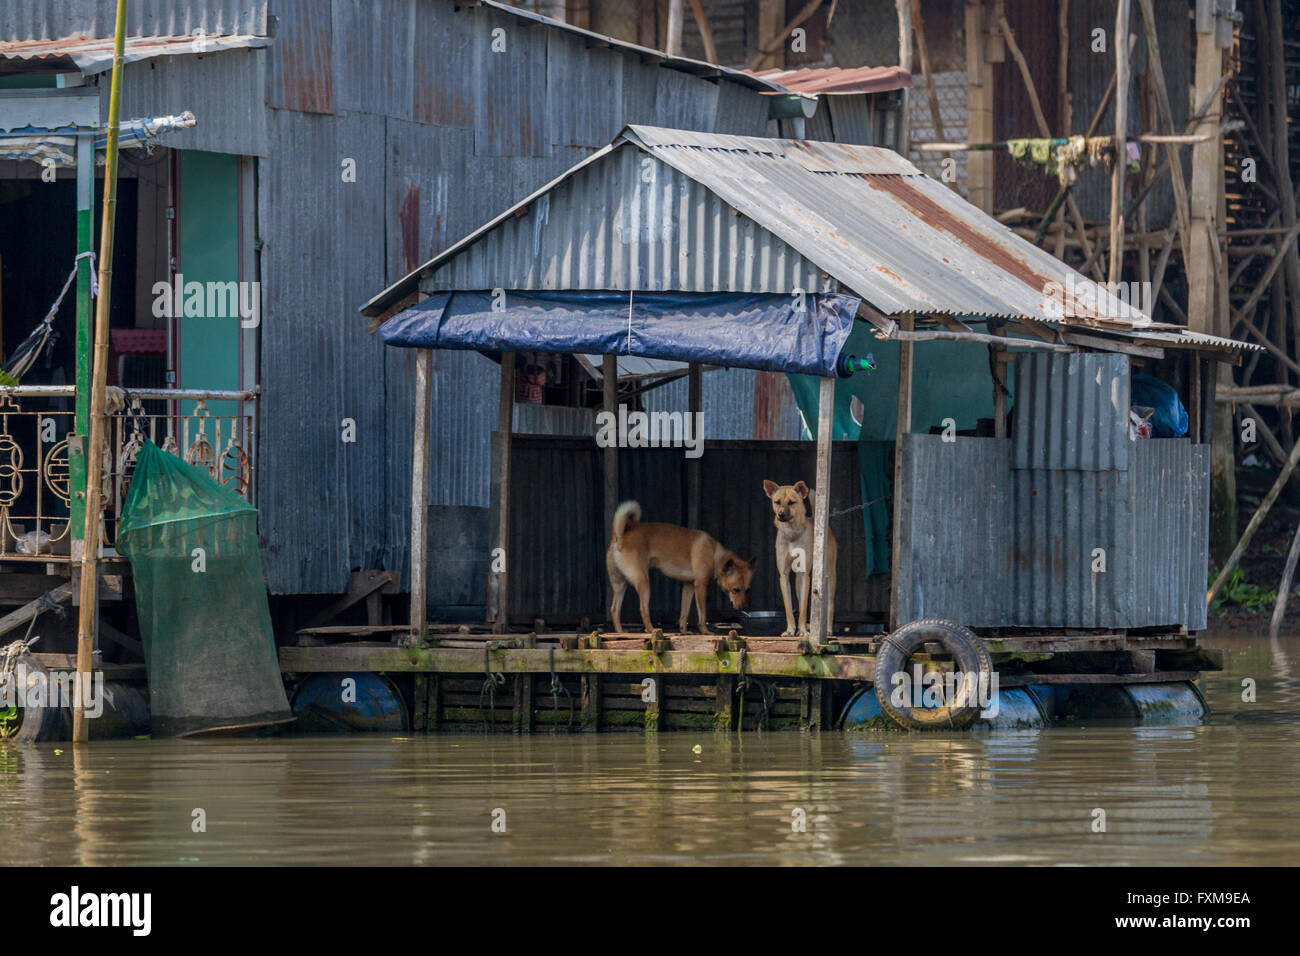 Floating kennel with two dogs on part of the Chau Doc floating village, Mekong Delta, Vietnam - Stock Image